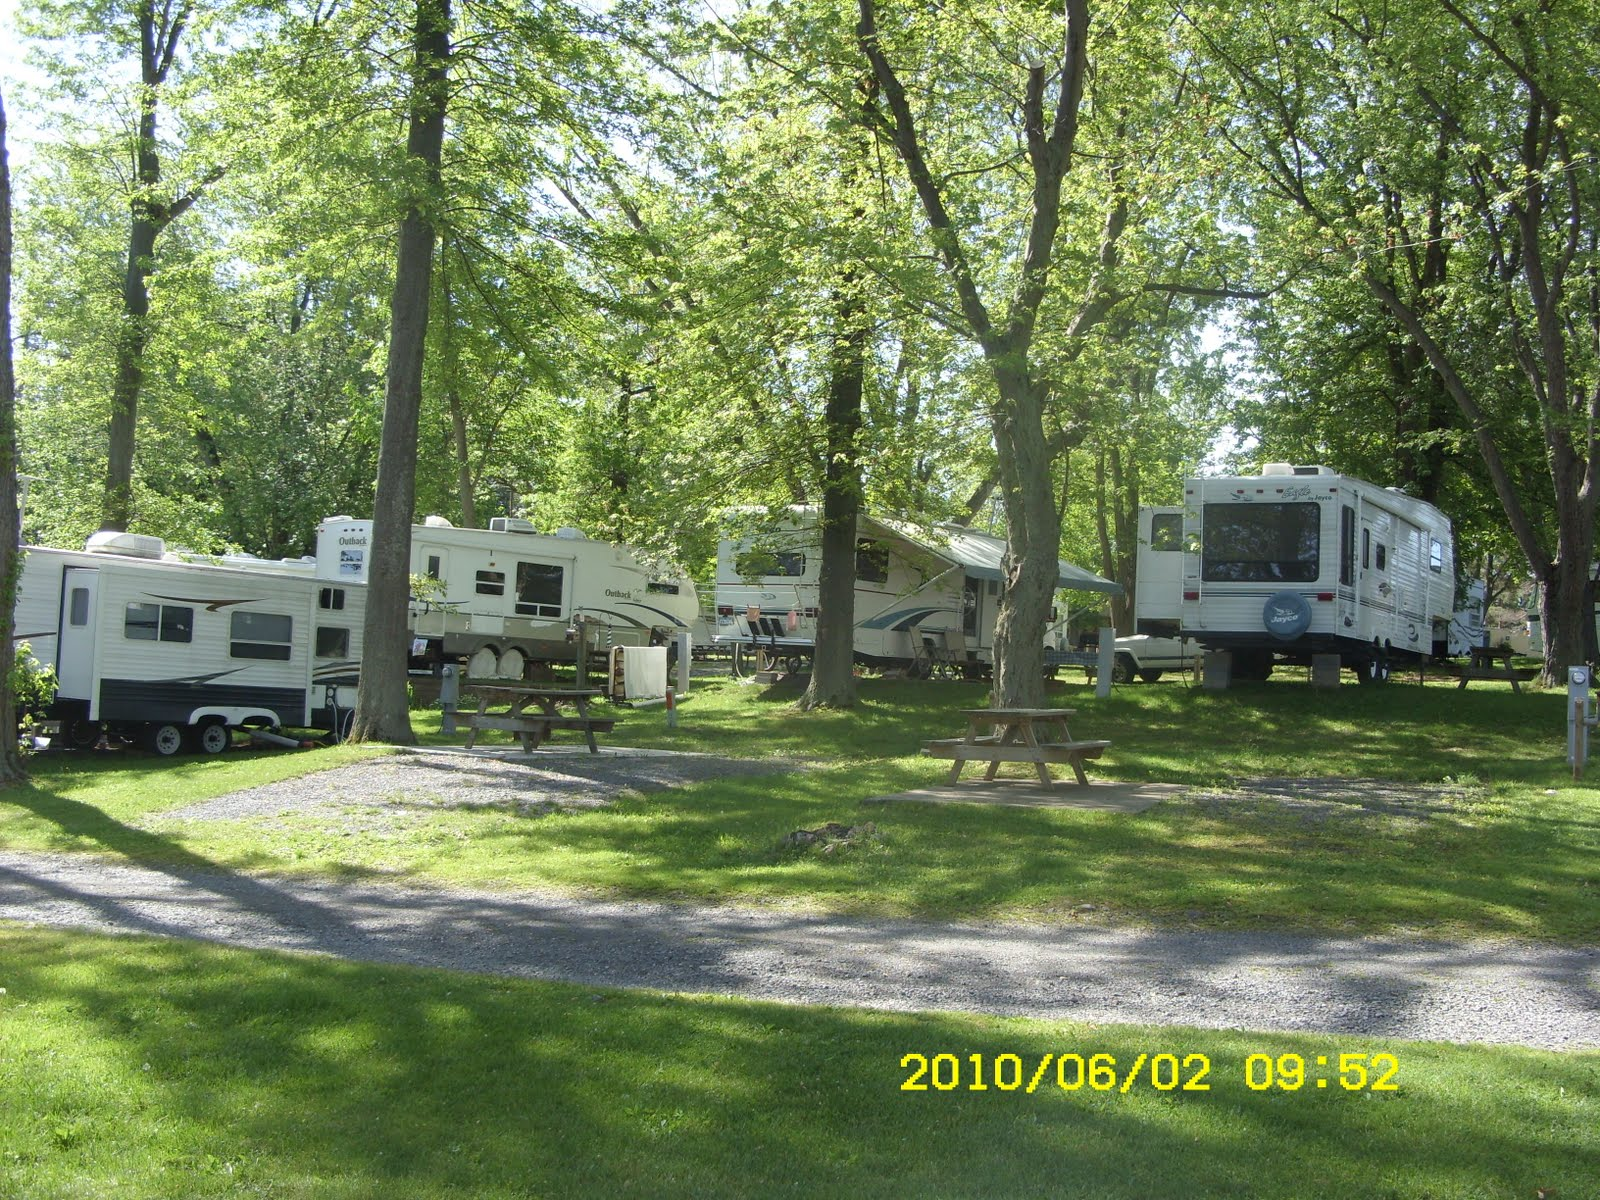 Trailer park dating syracuse ny